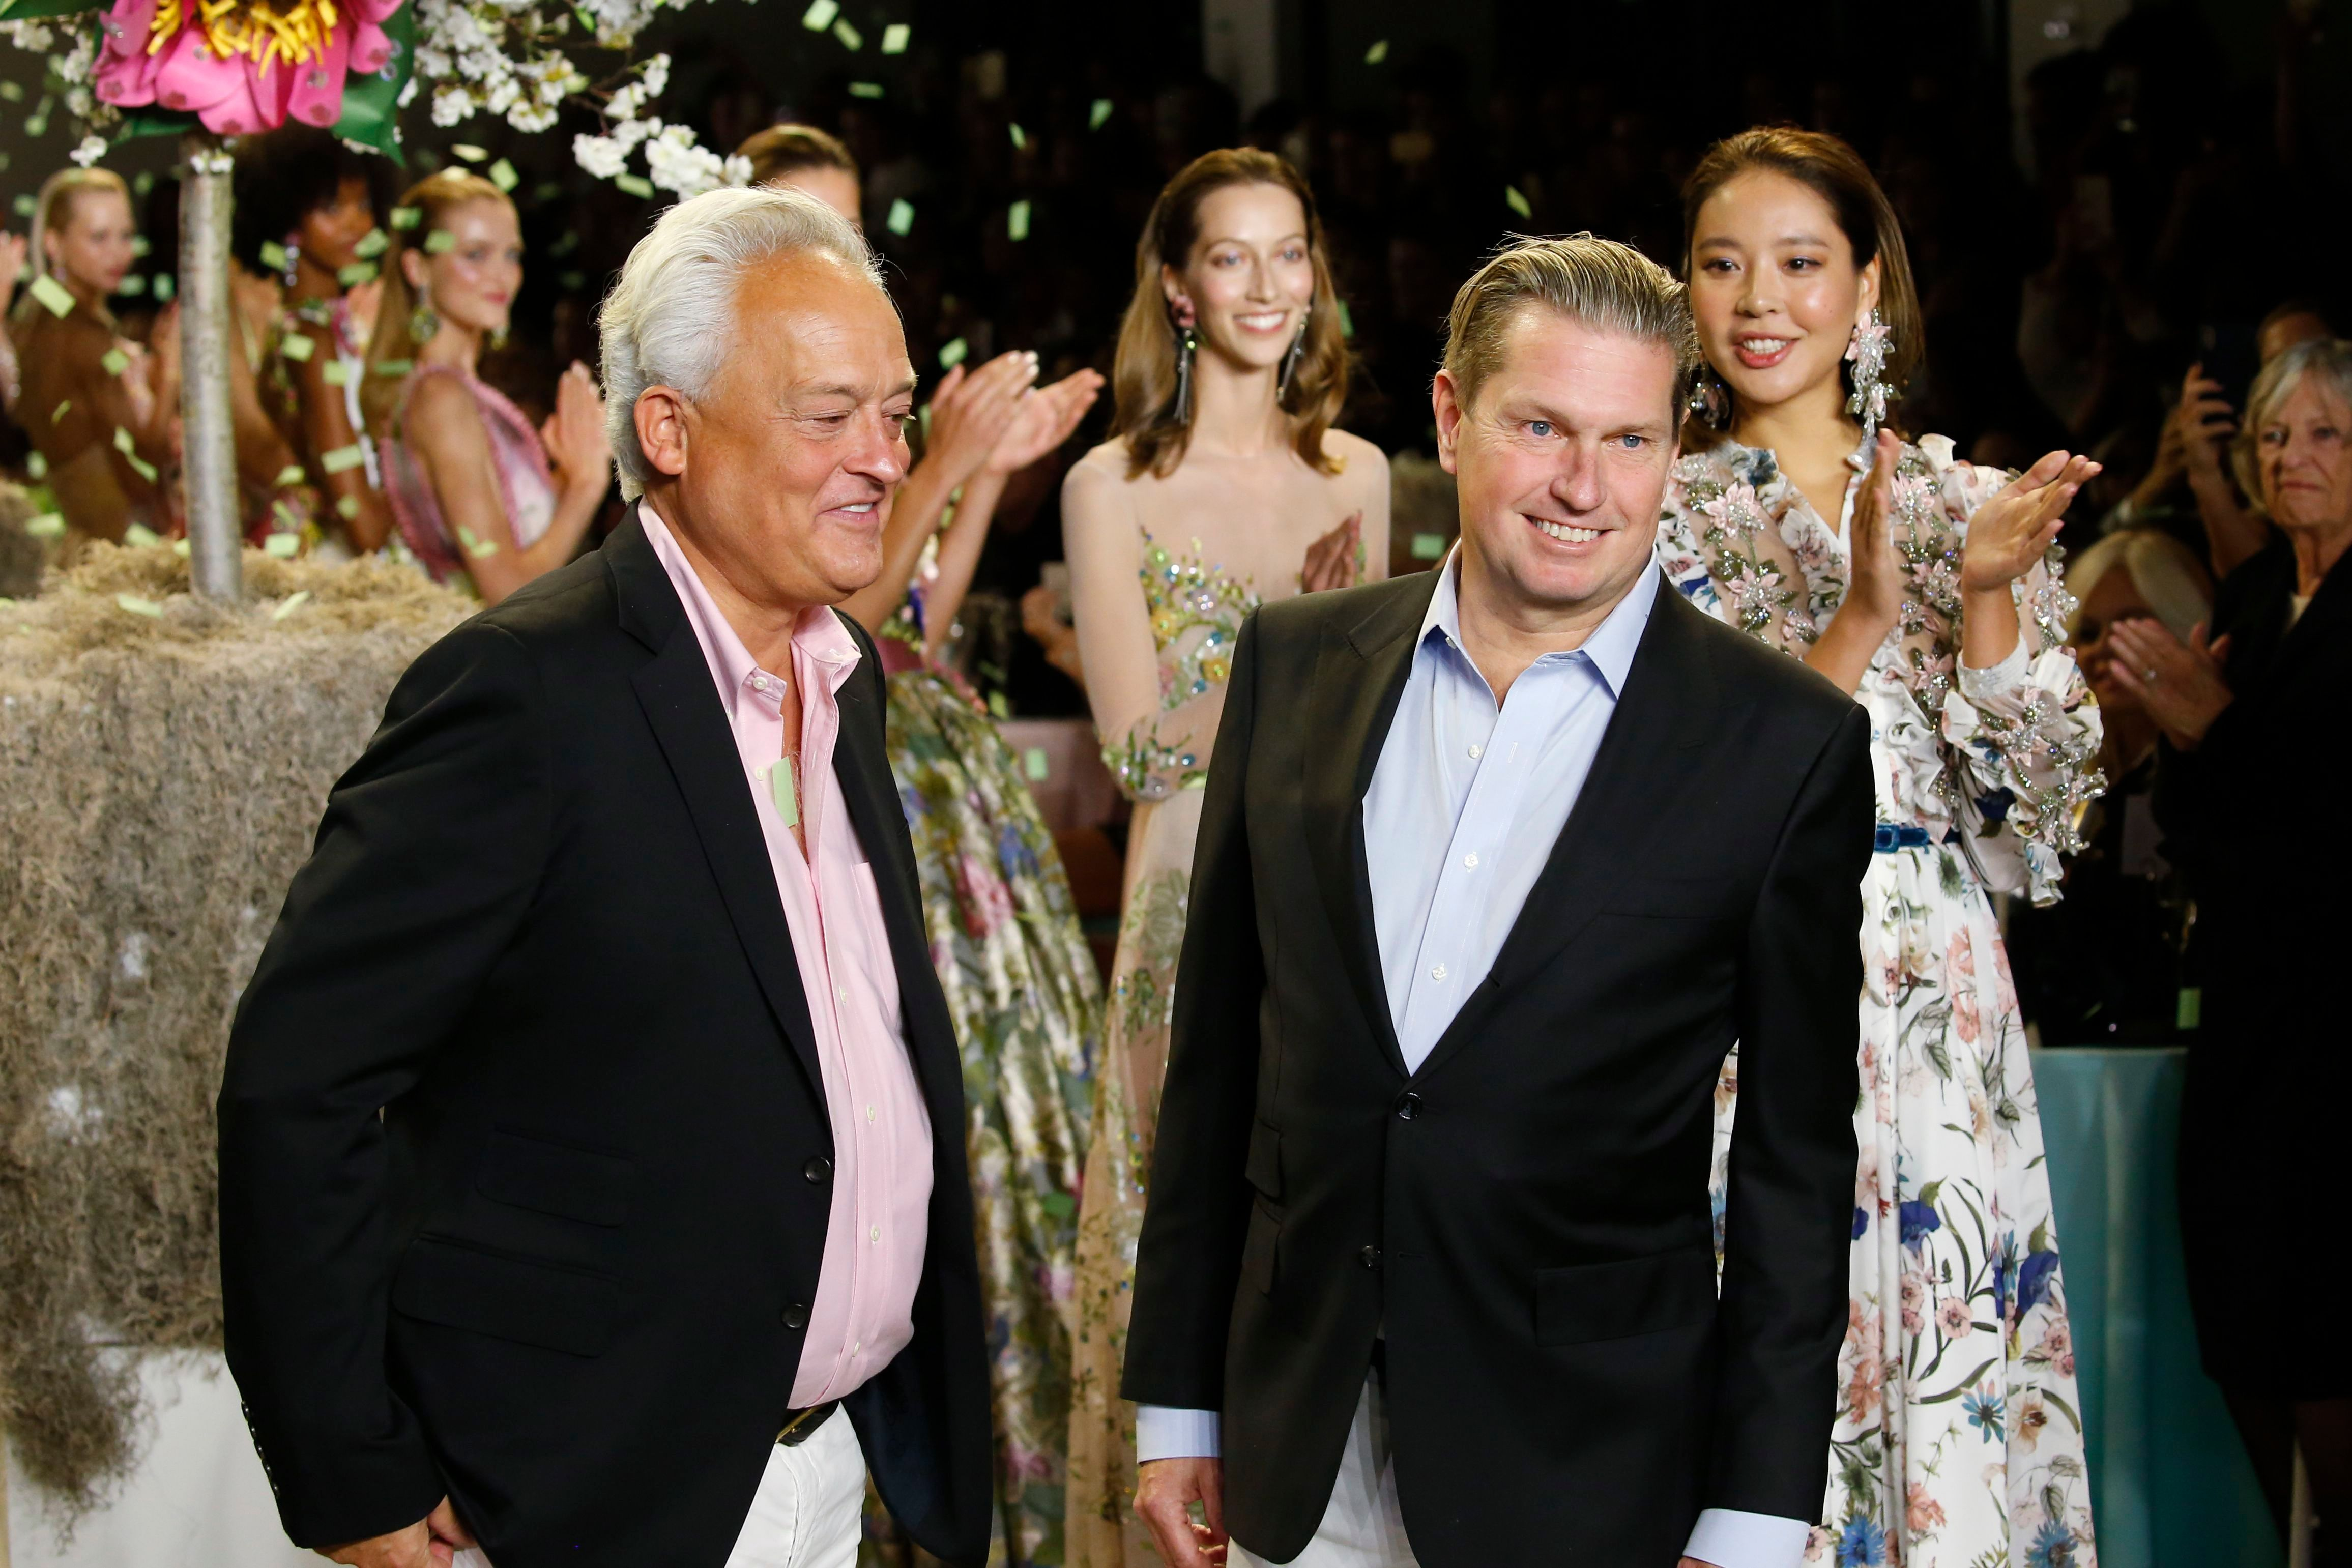 Mark Badgley and James Mischka on the catwalkBadgley Mischka show, Runway, Spring Summer 2019, New York Fashion Week, USA - 08 Sep 2018